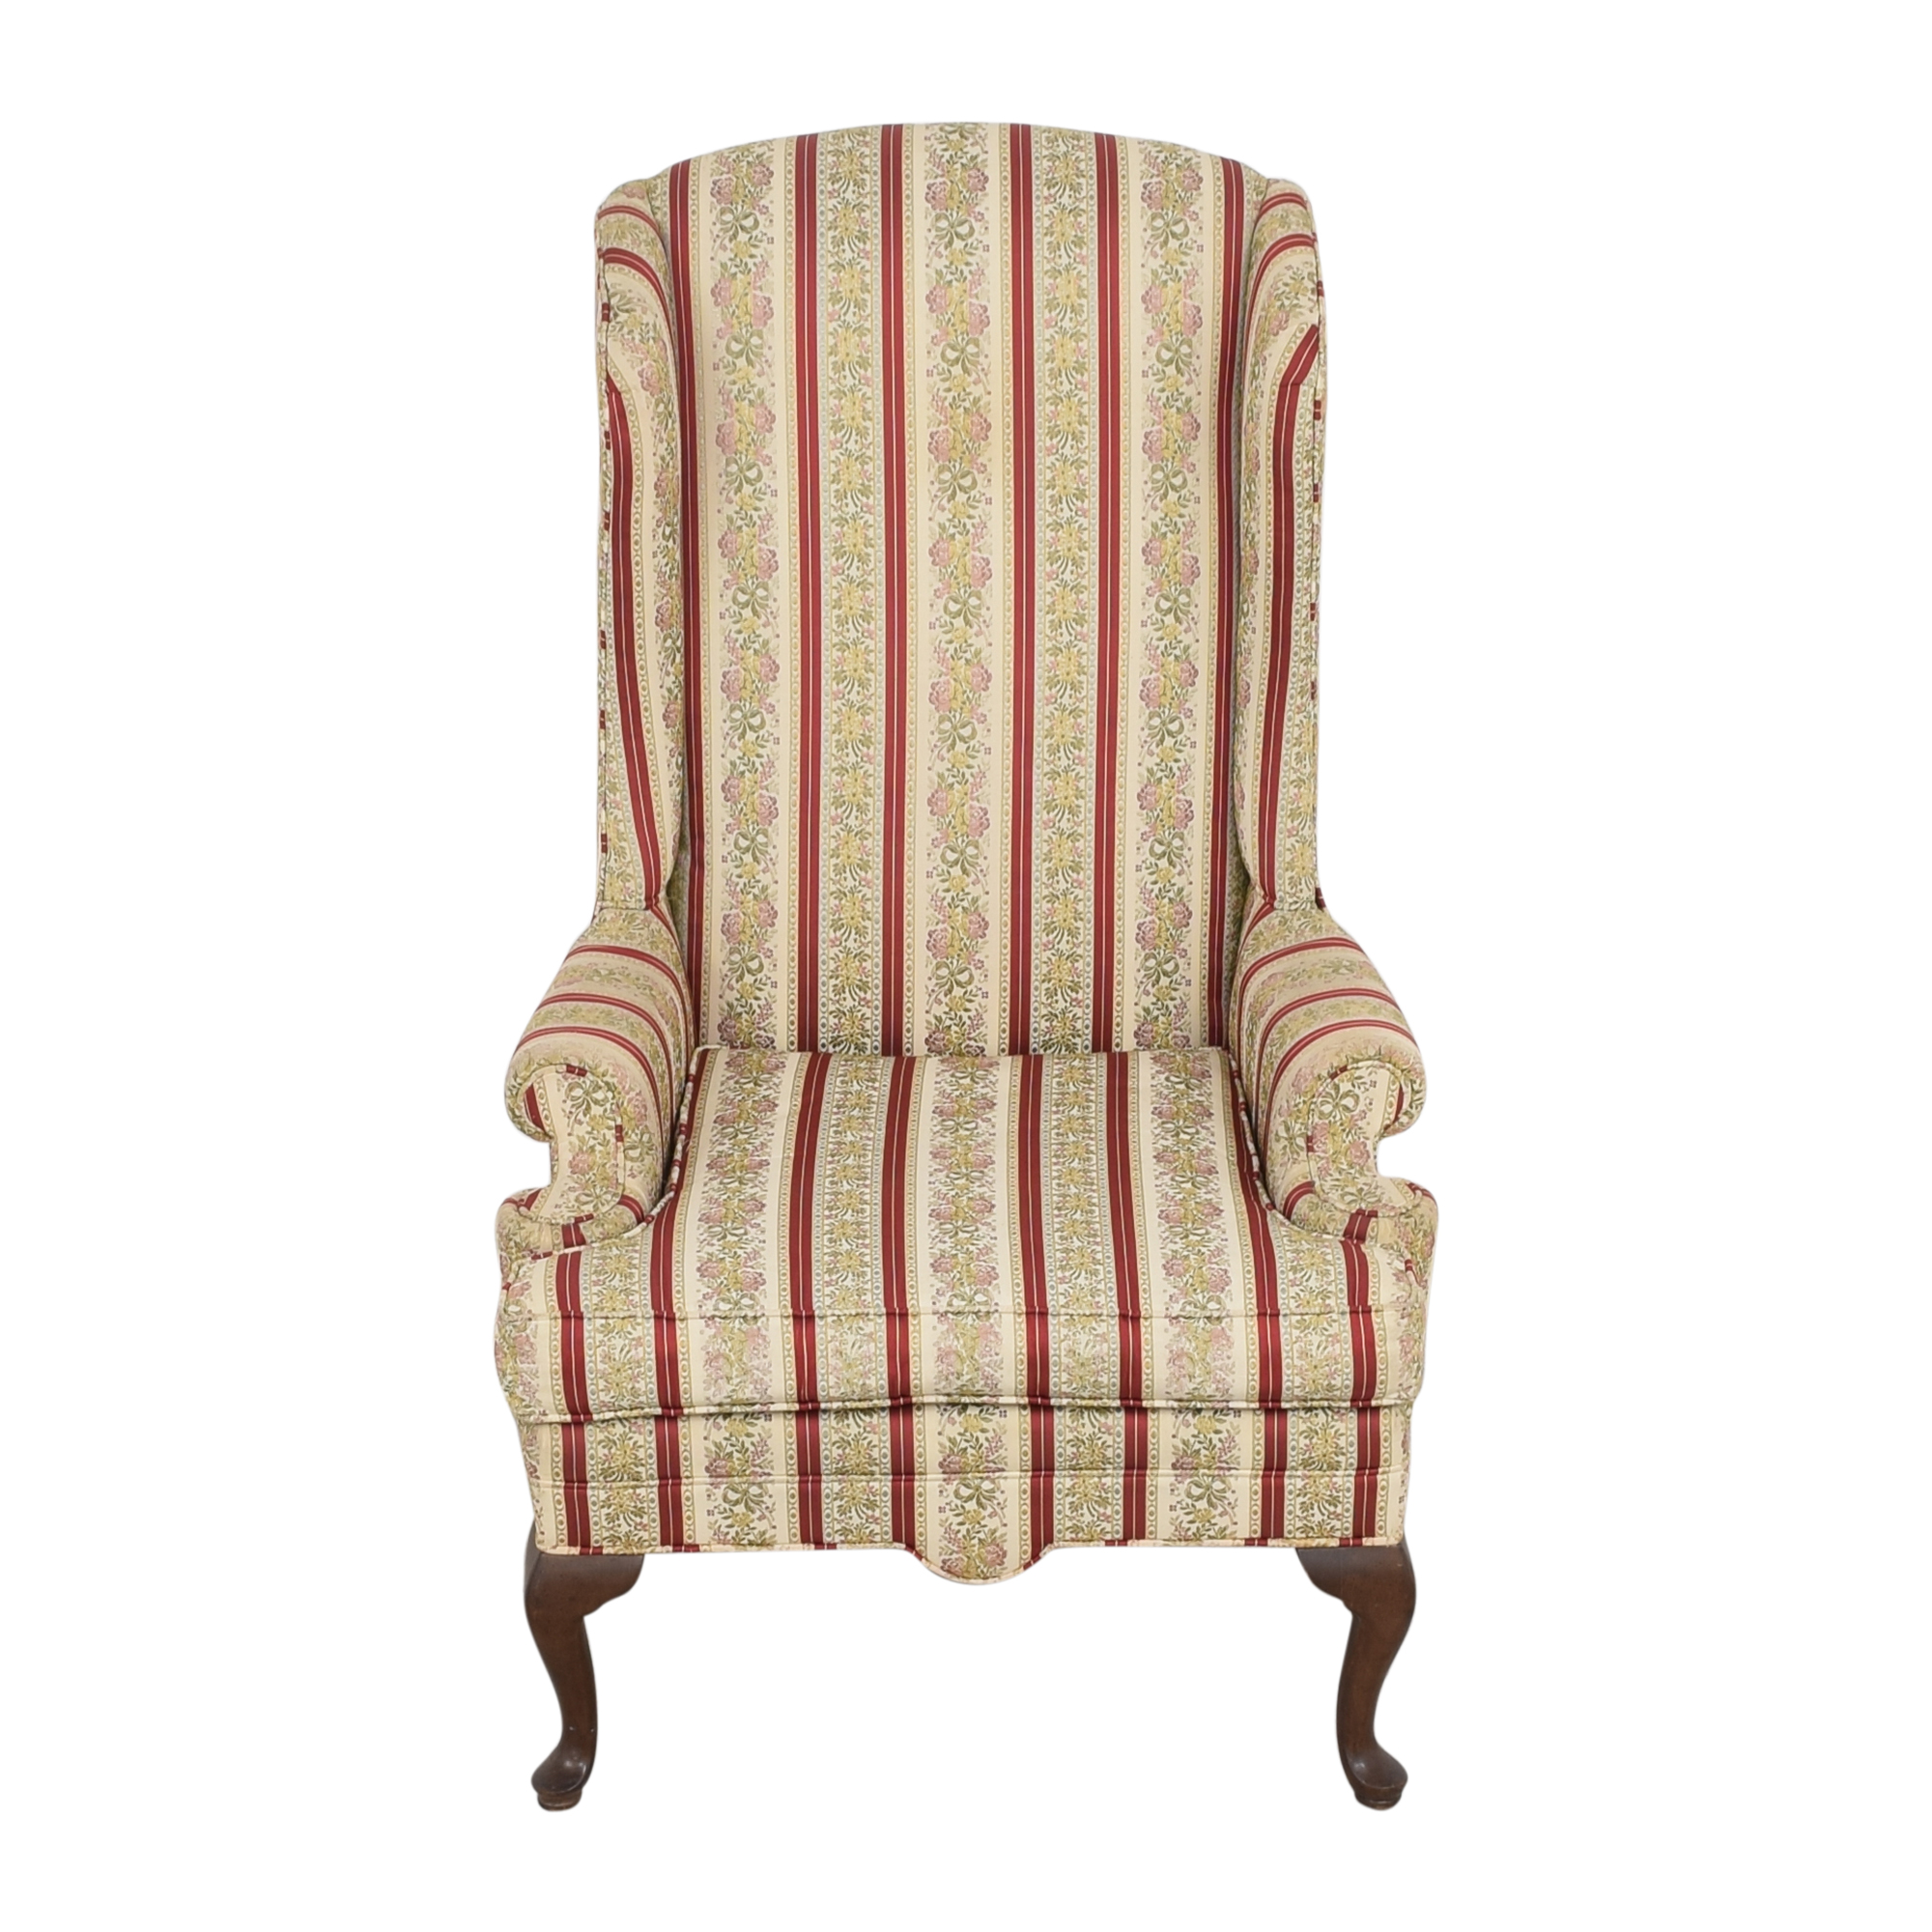 Ethan Allen Ethan Allen Wing Chair used